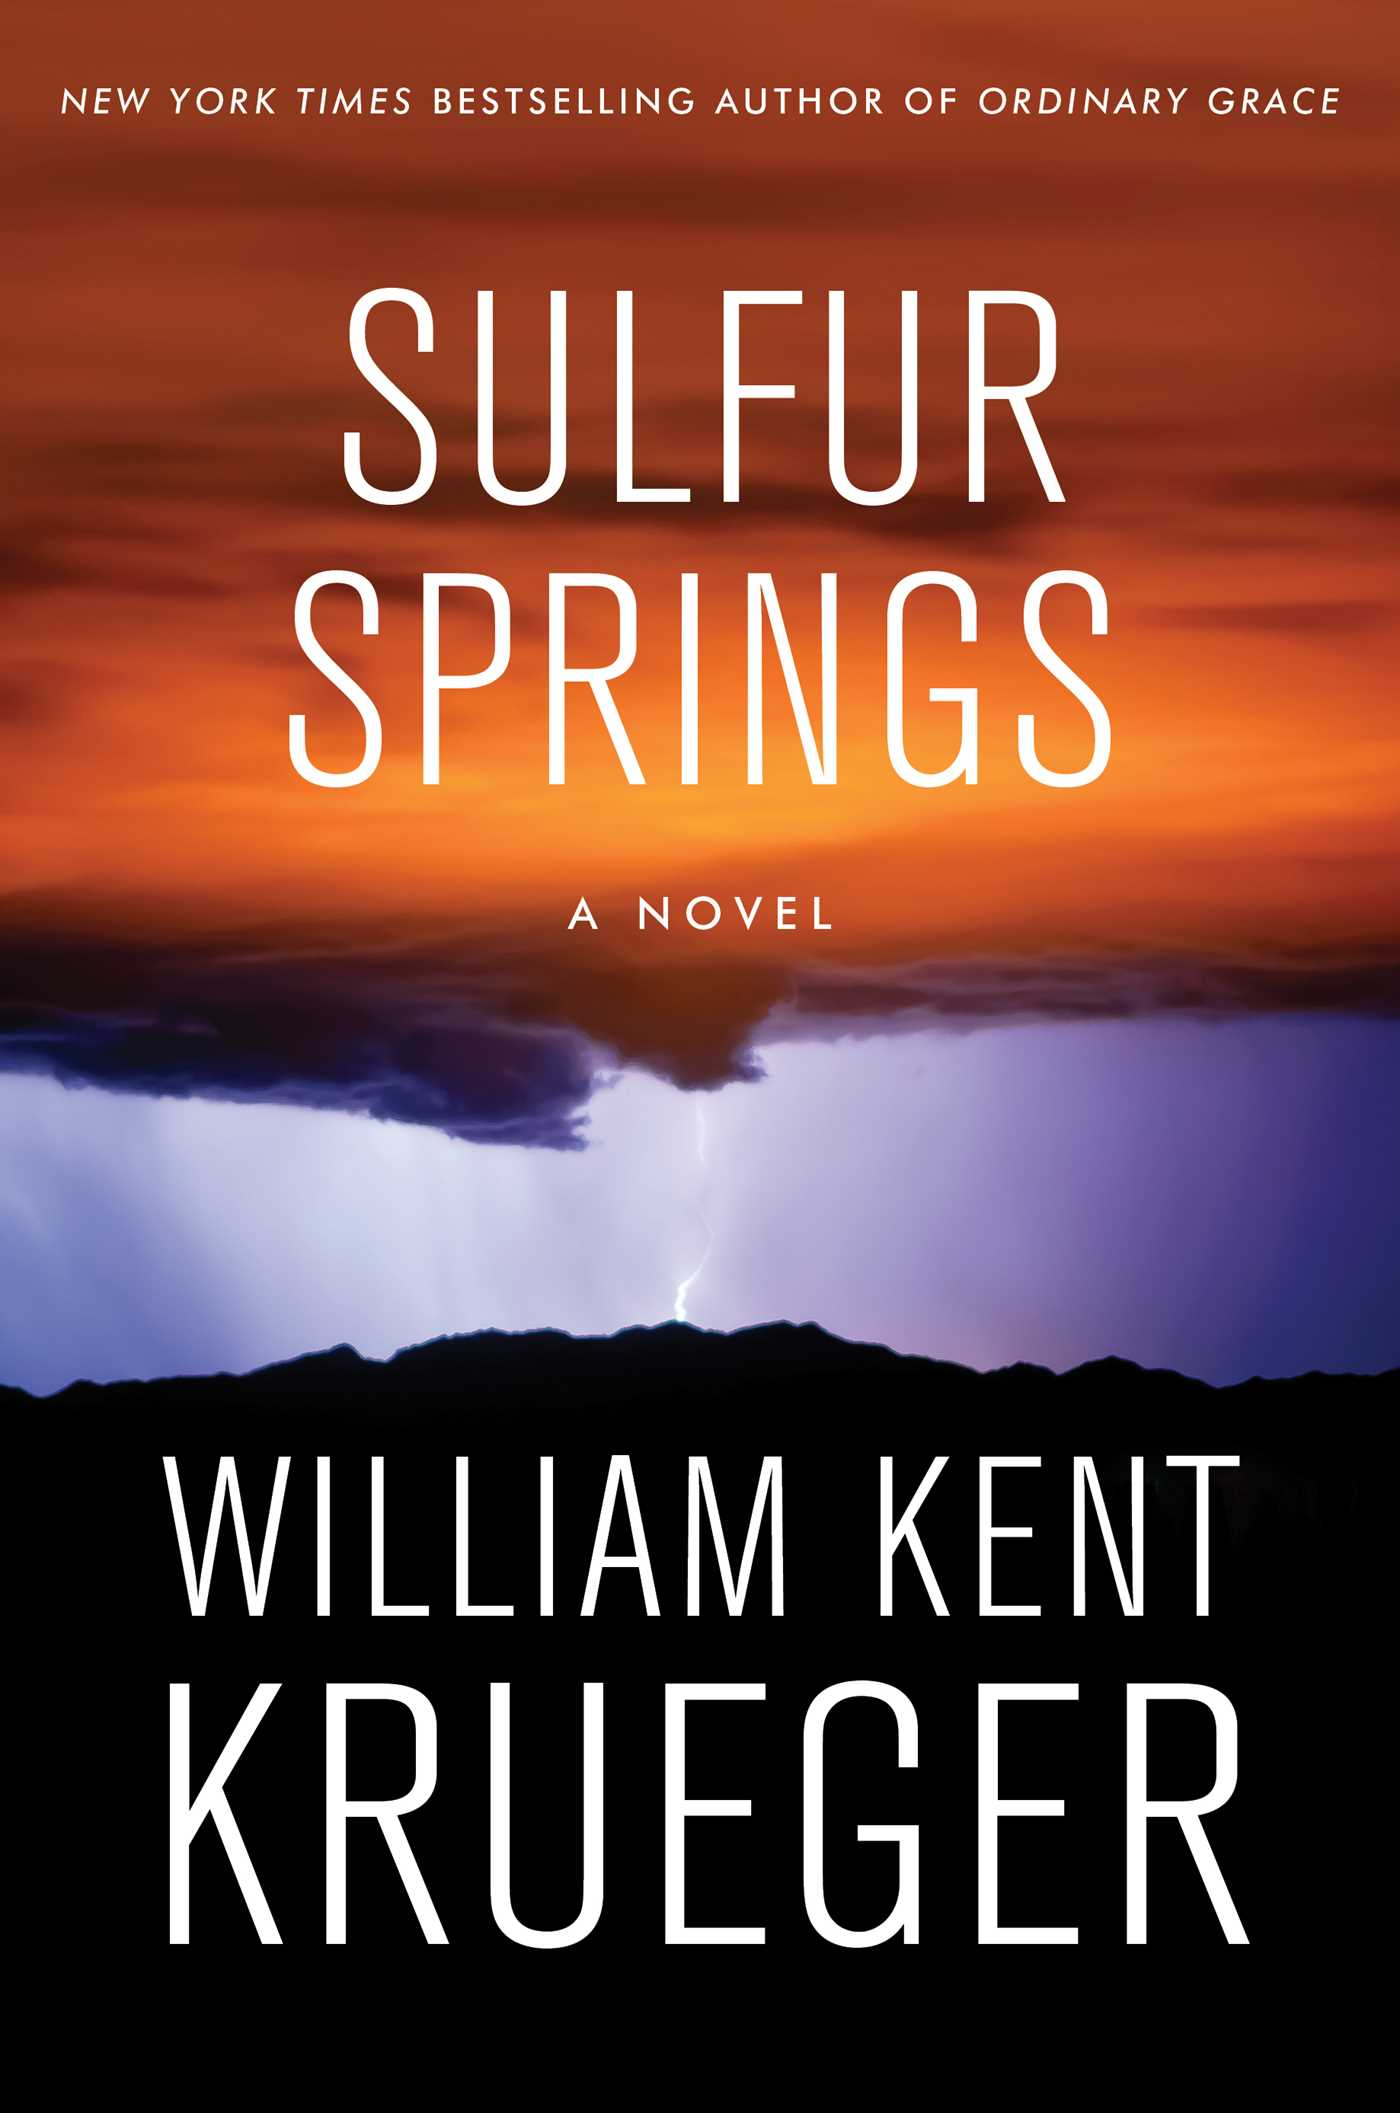 Sulfur springs 9781501147340 hr